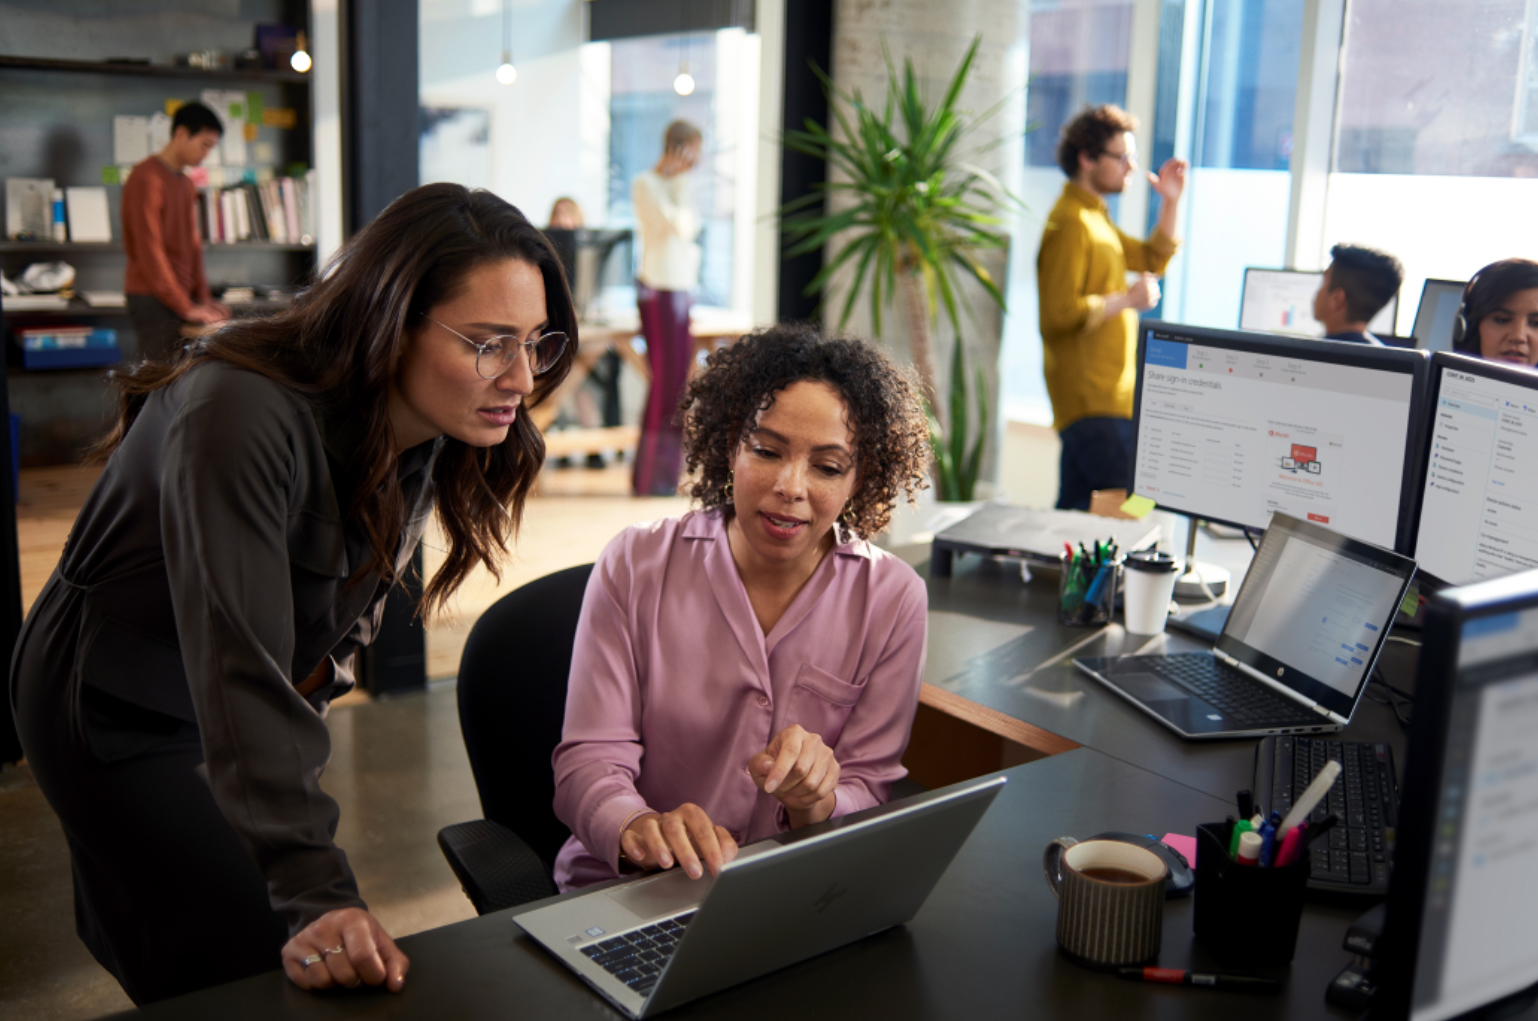 Microsoft increasing transparency and customer control over data Two-women-in-office-with-laptop.jpg